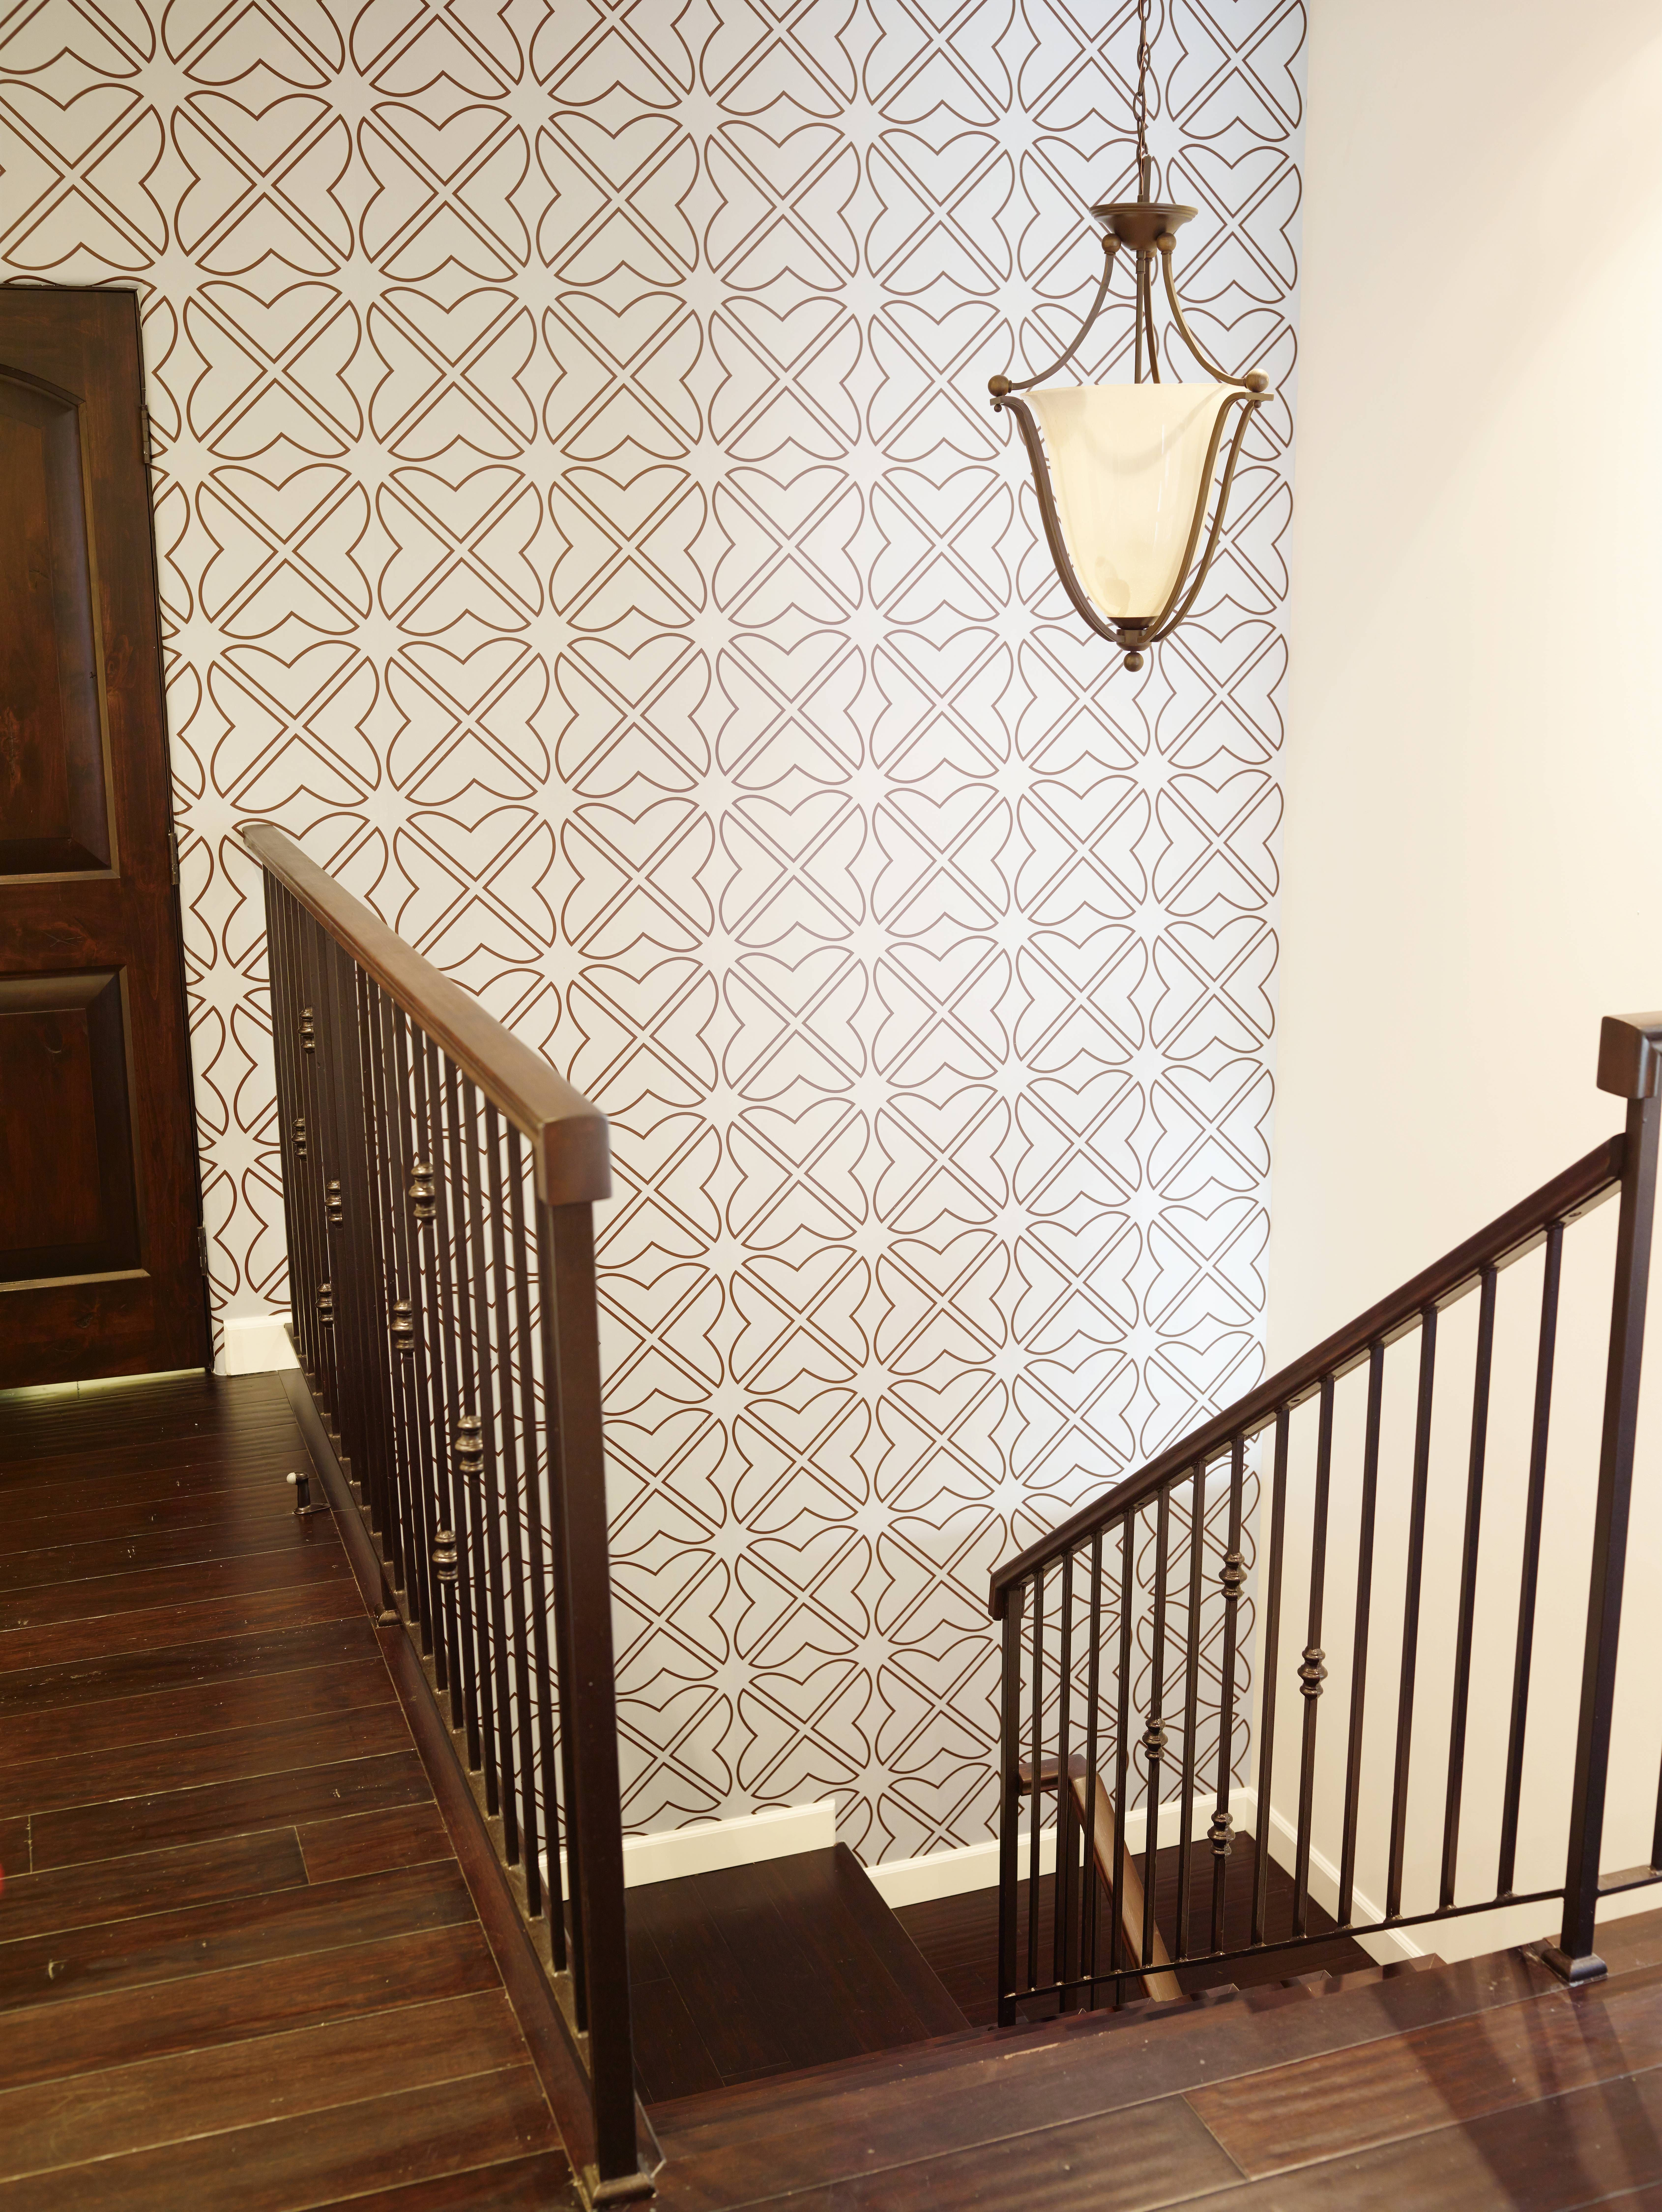 Wallpaper by Aronel, on staircase wall